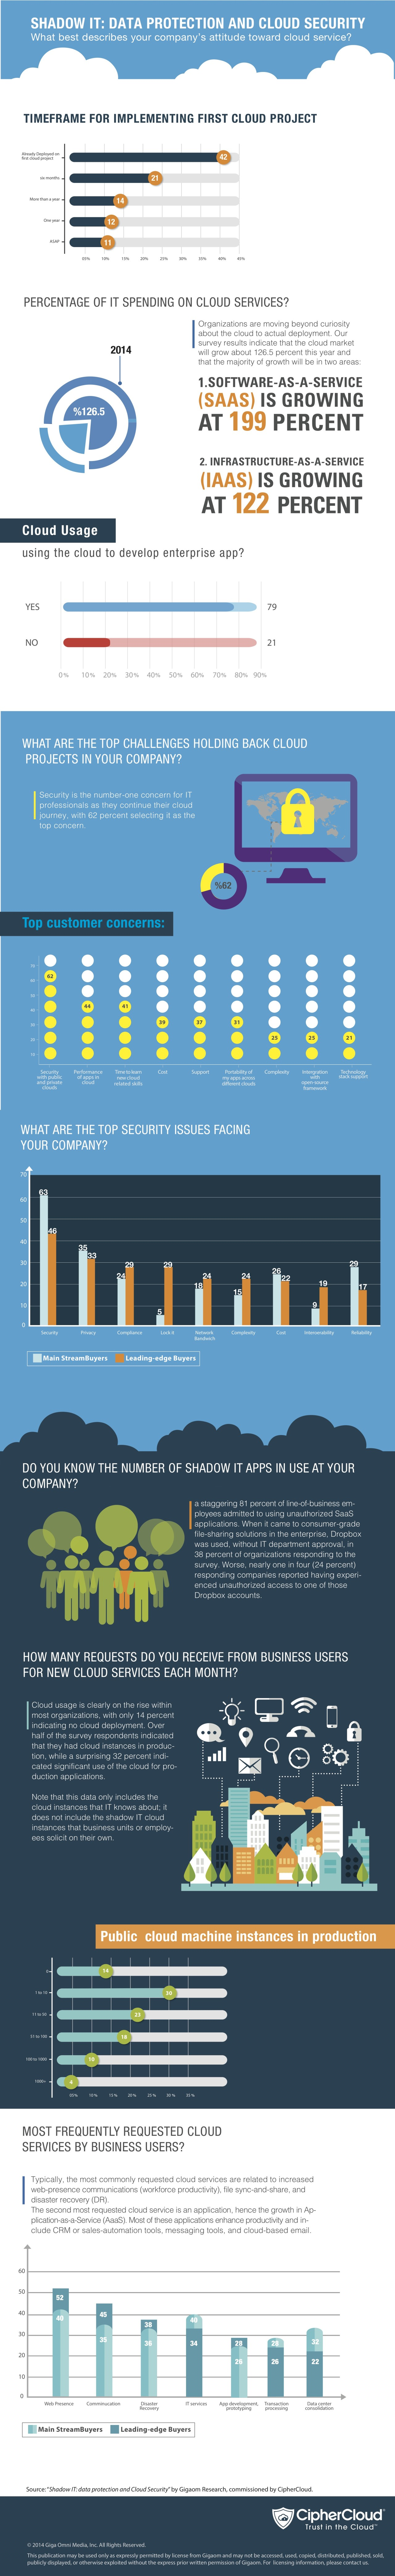 Shadow IT Cloud Data Security